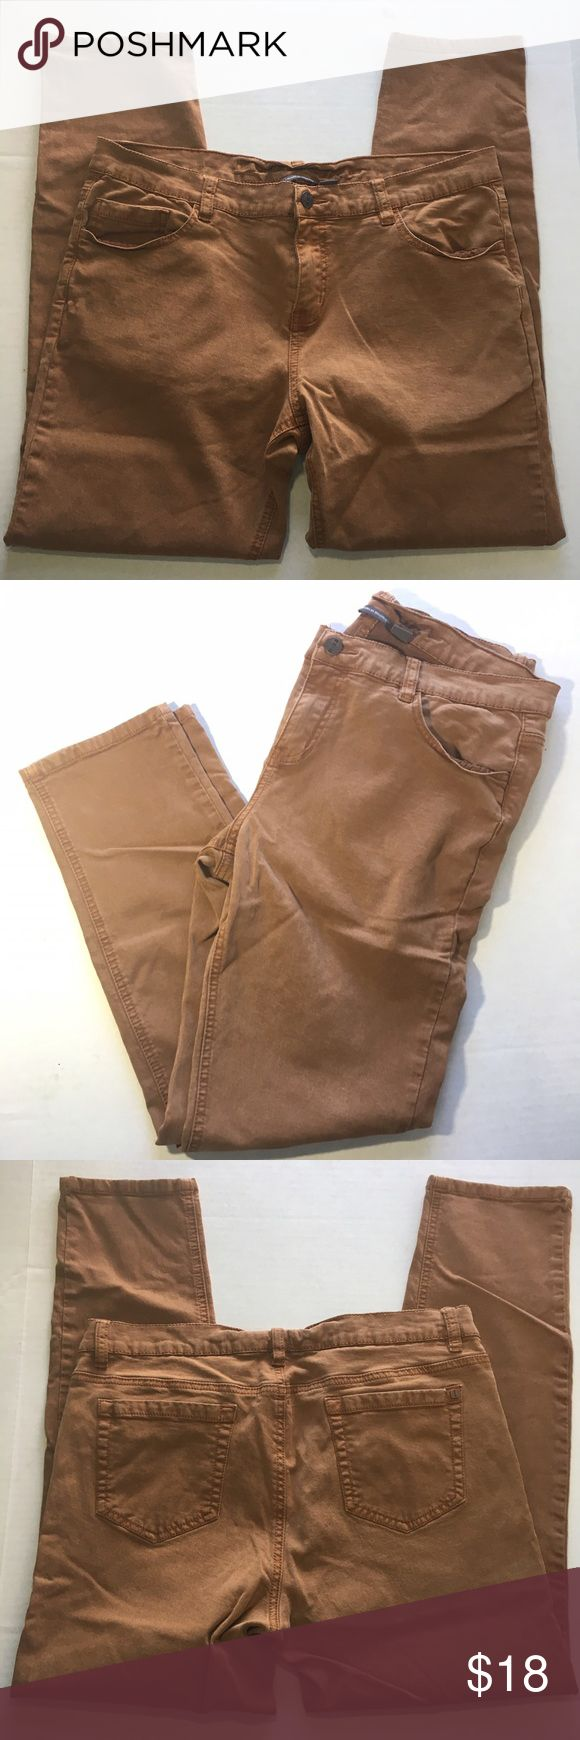 """Buffalo Ankle Grazer Skinny Brown Tan Denim Jeans Excellent used condition, like New. Brown rust color. Stop at the Ankle, skinny style. Women's size 34 or 14. 26.5"""" inseam. 34"""" waist. Mid/high rise: 10"""" rise. i jeans by Buffalo Jeans Ankle & Cropped"""